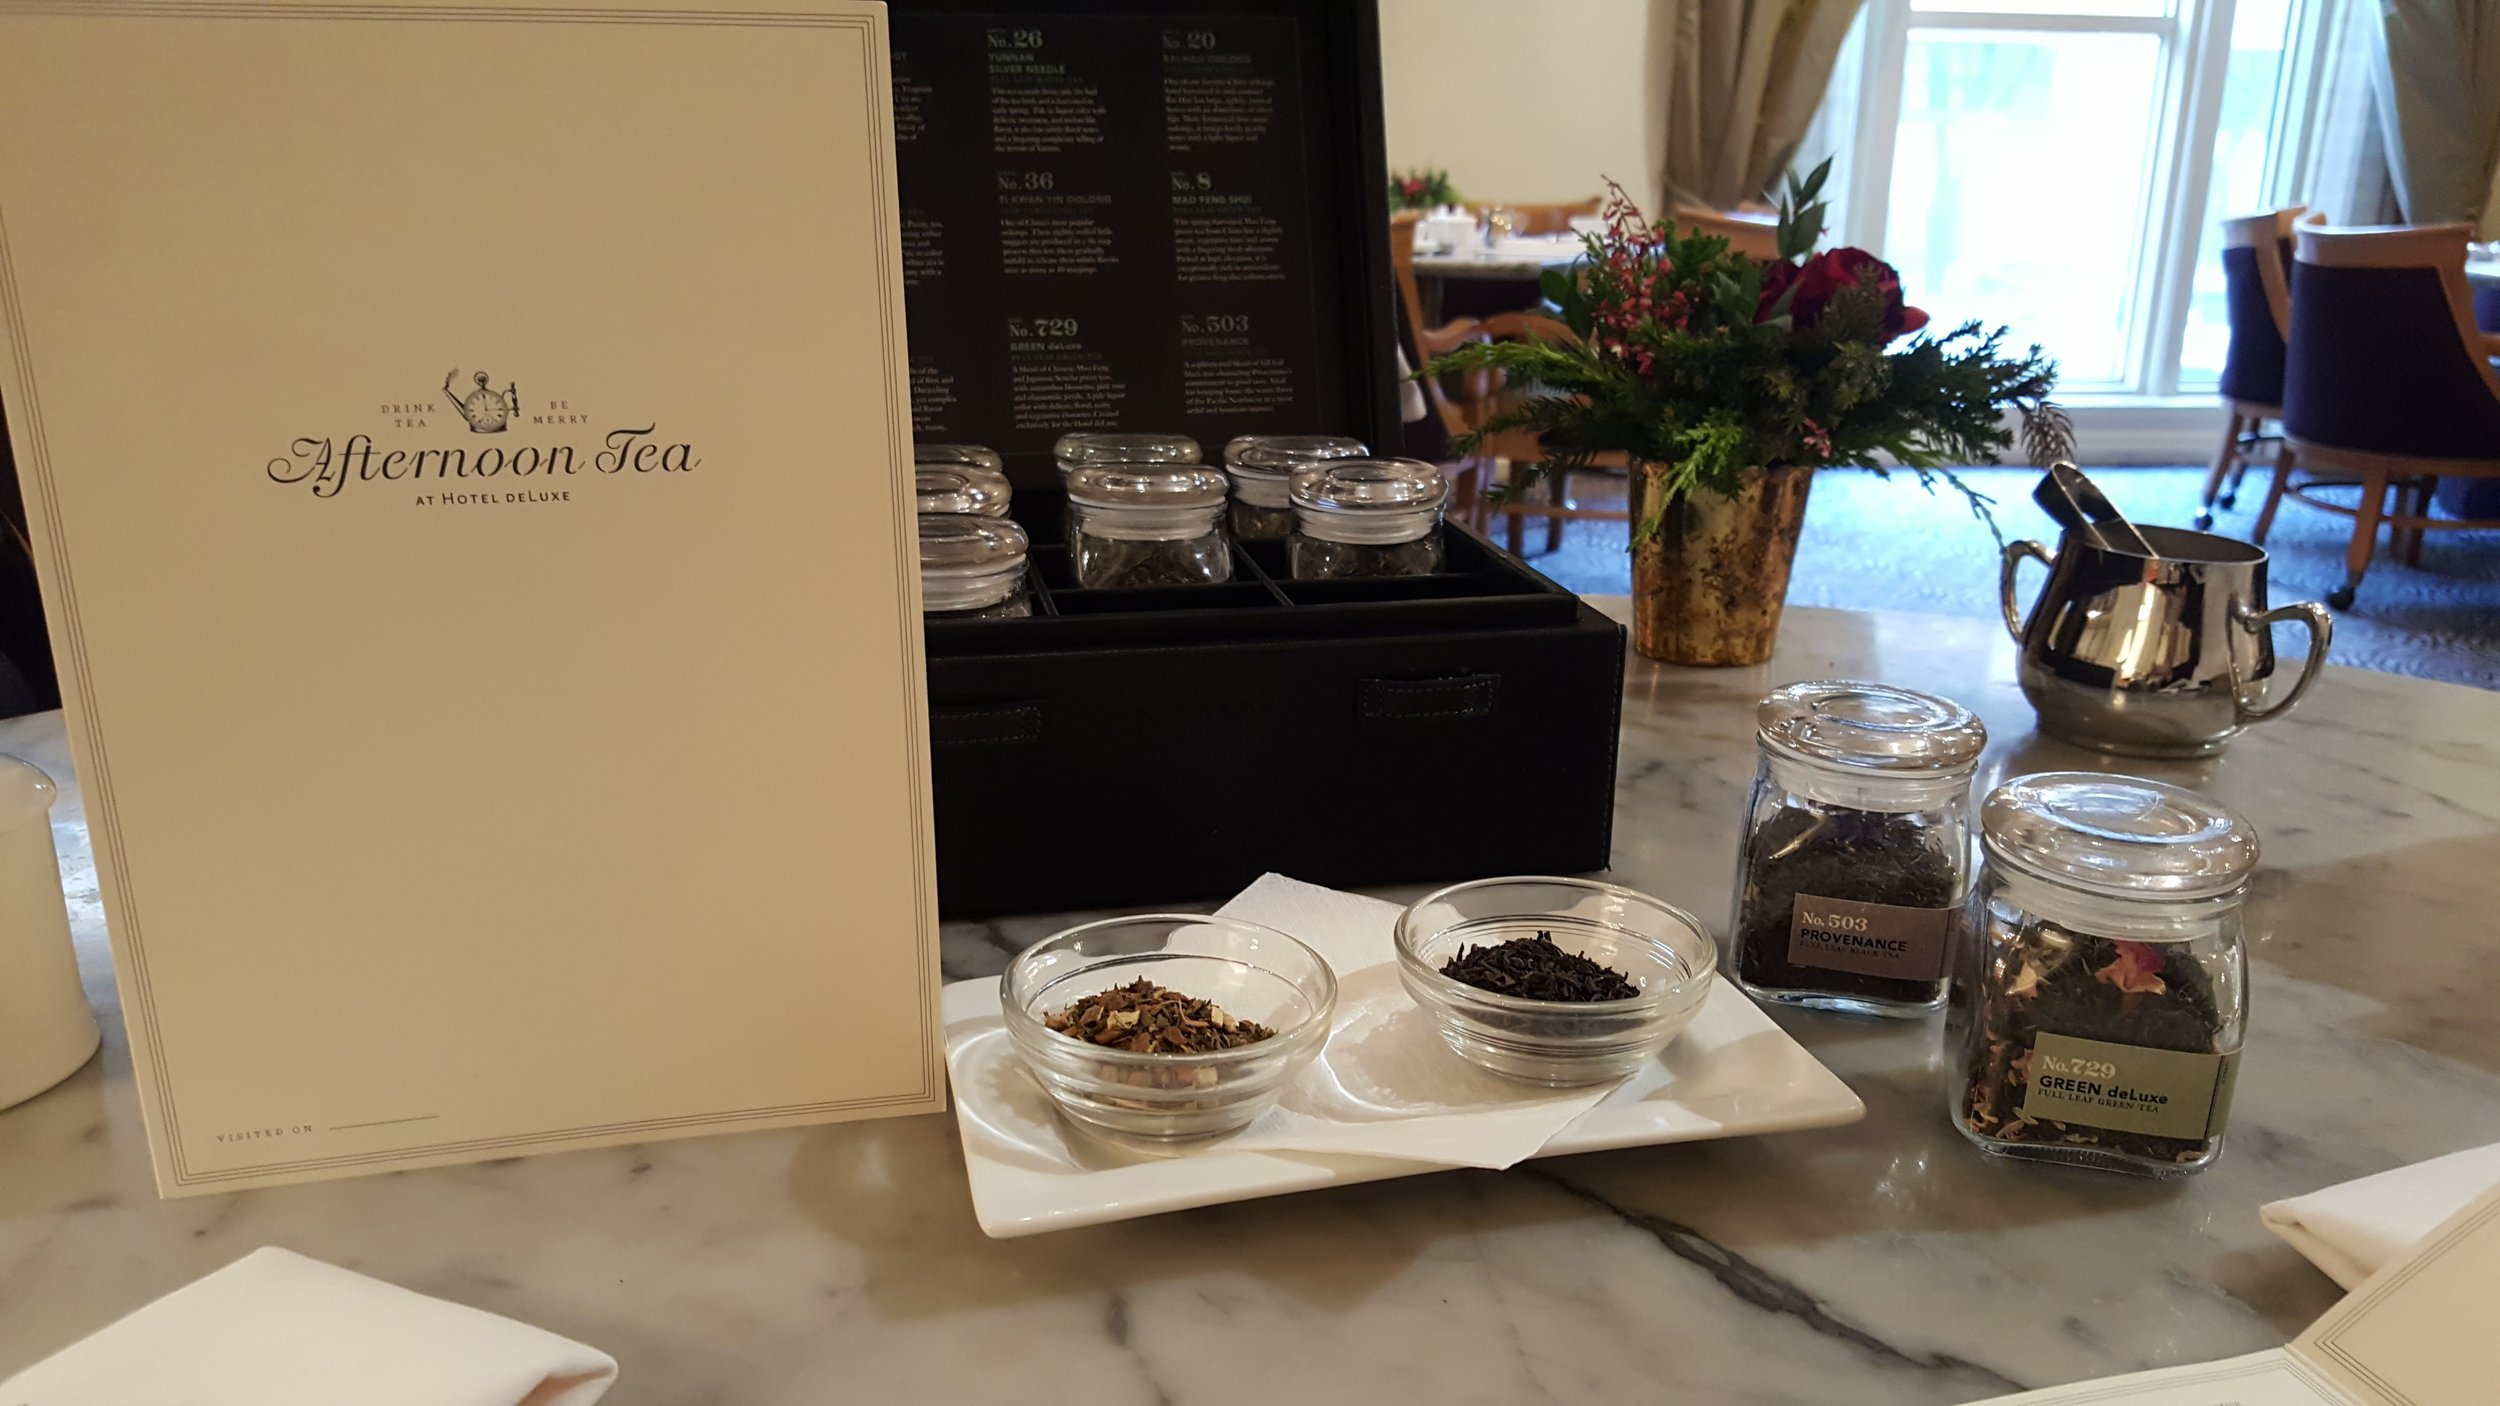 Afternoon Tea at Hotel deLuxe is a delight!